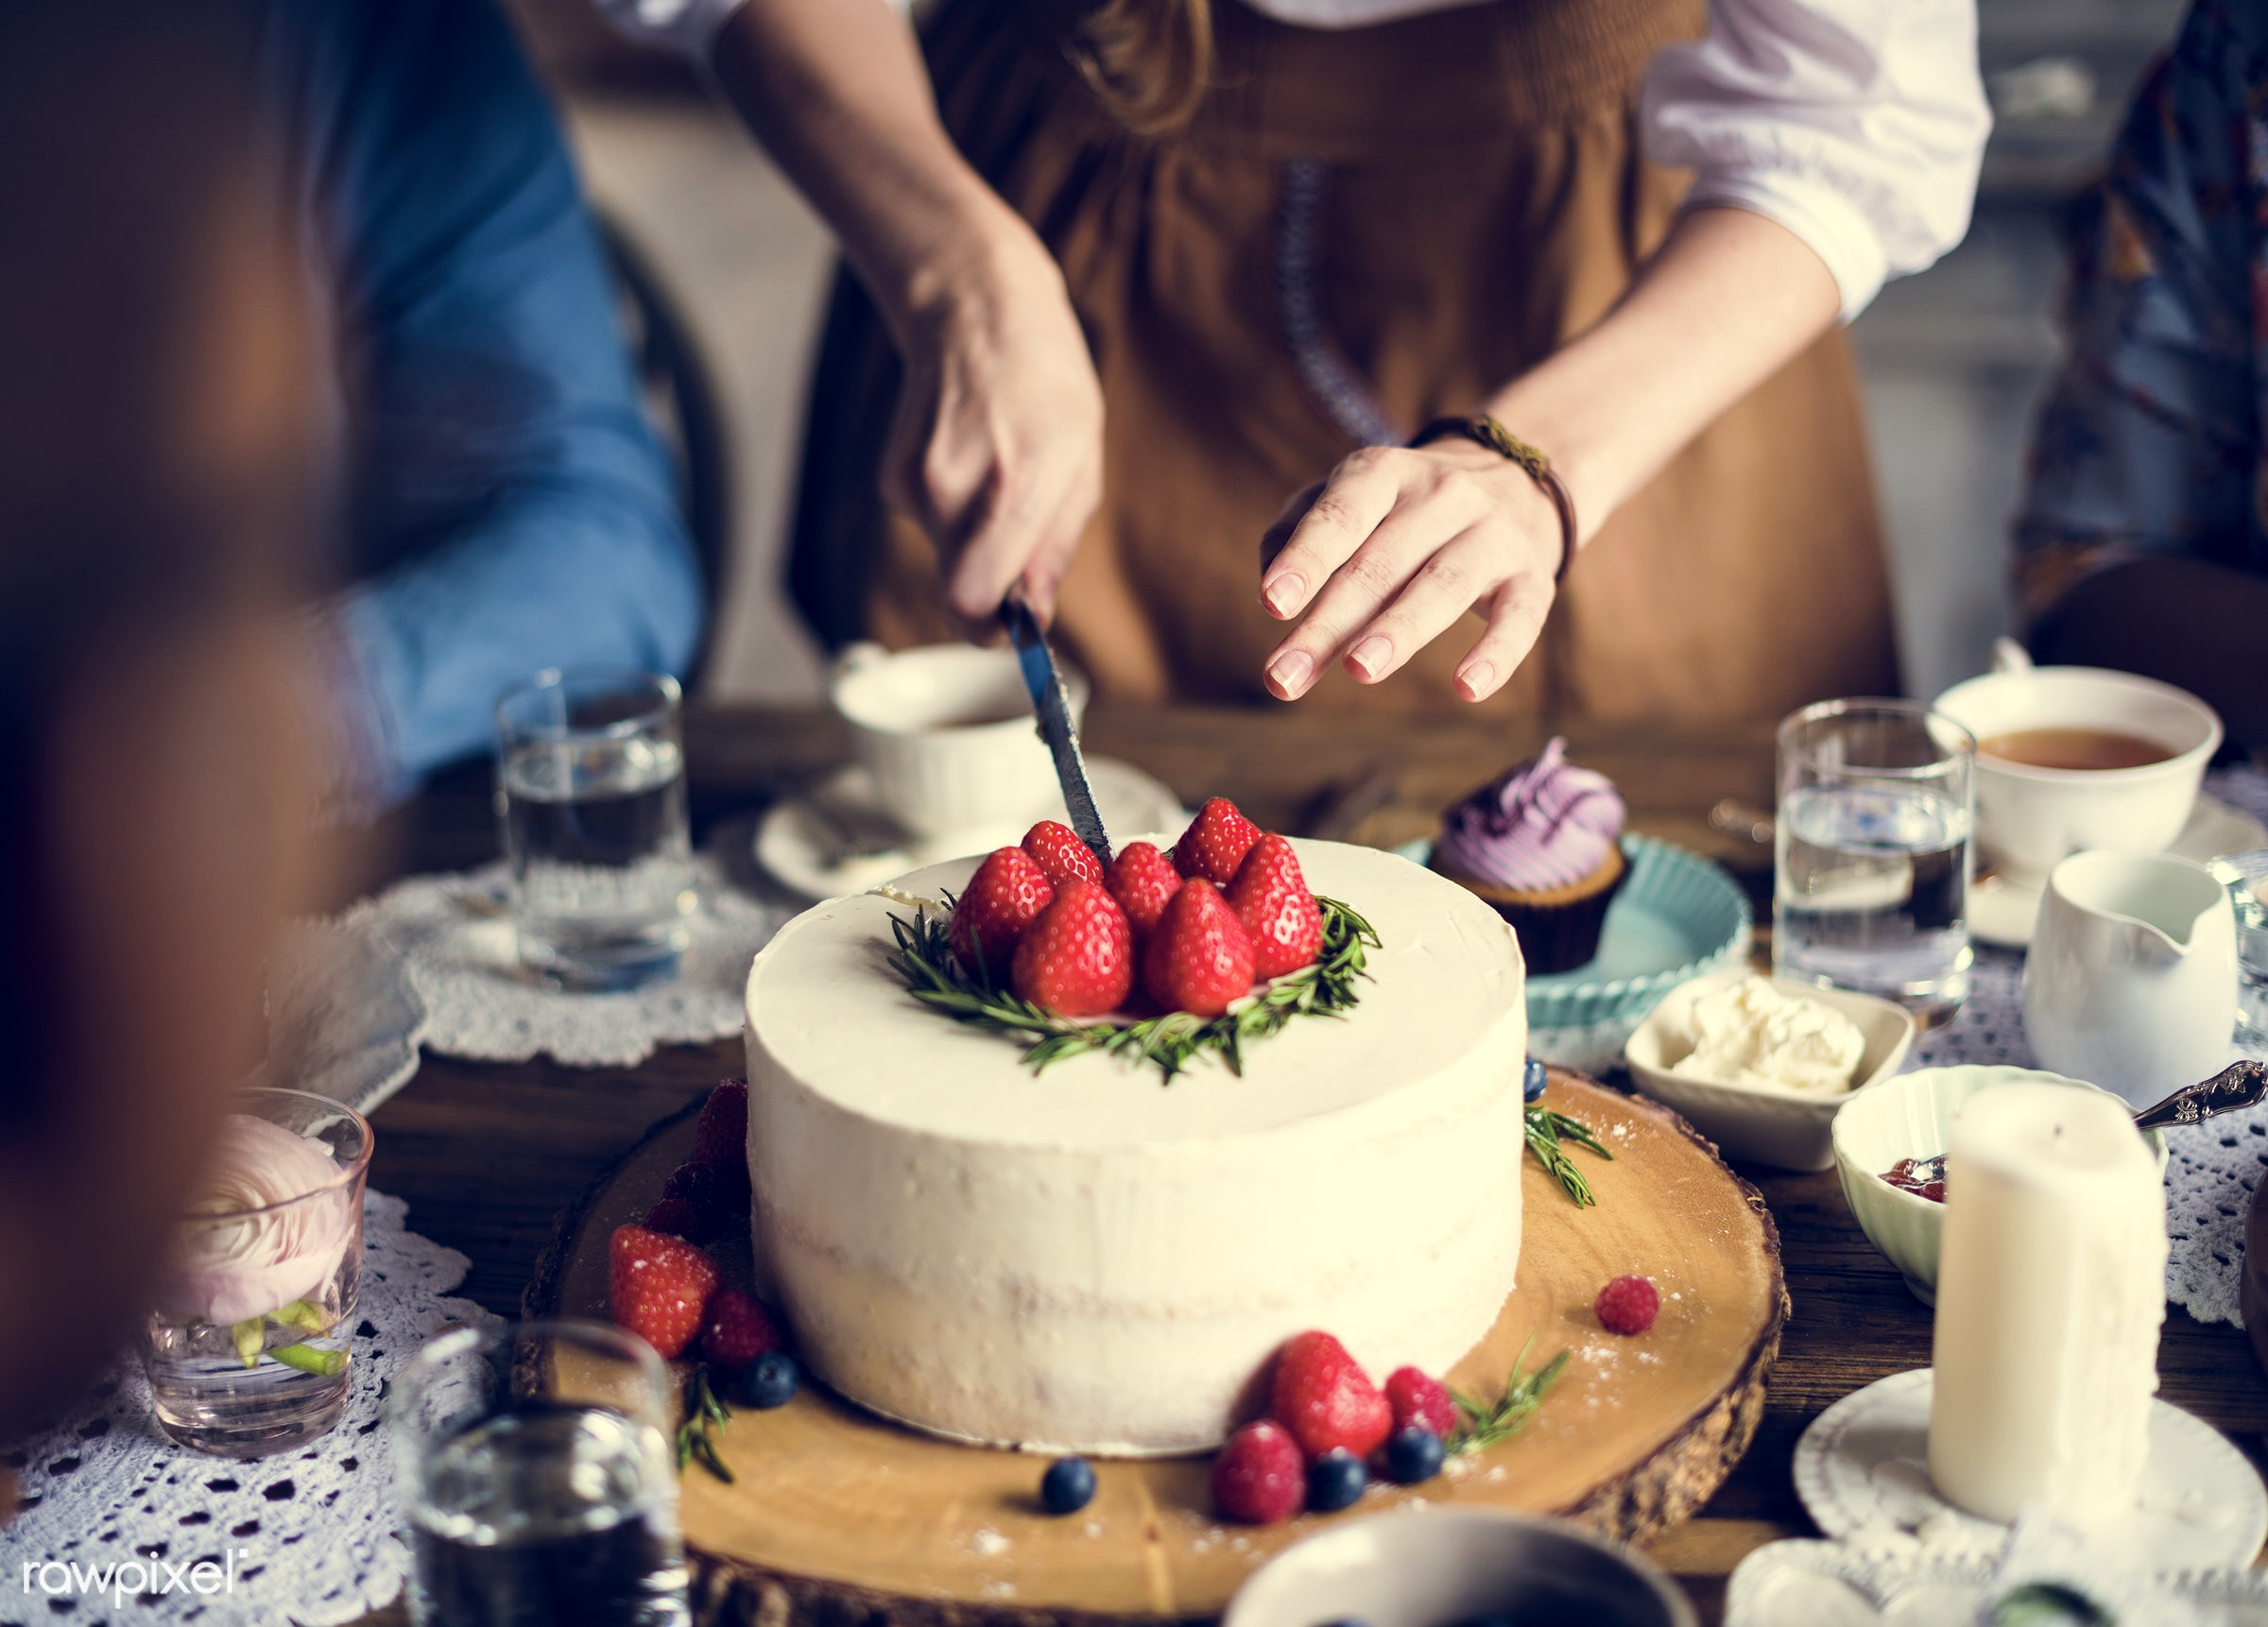 dish, person, recipe, party, tea, people, together, tea party, friends, bakery, frosting, gather, event, woman, gathering,...